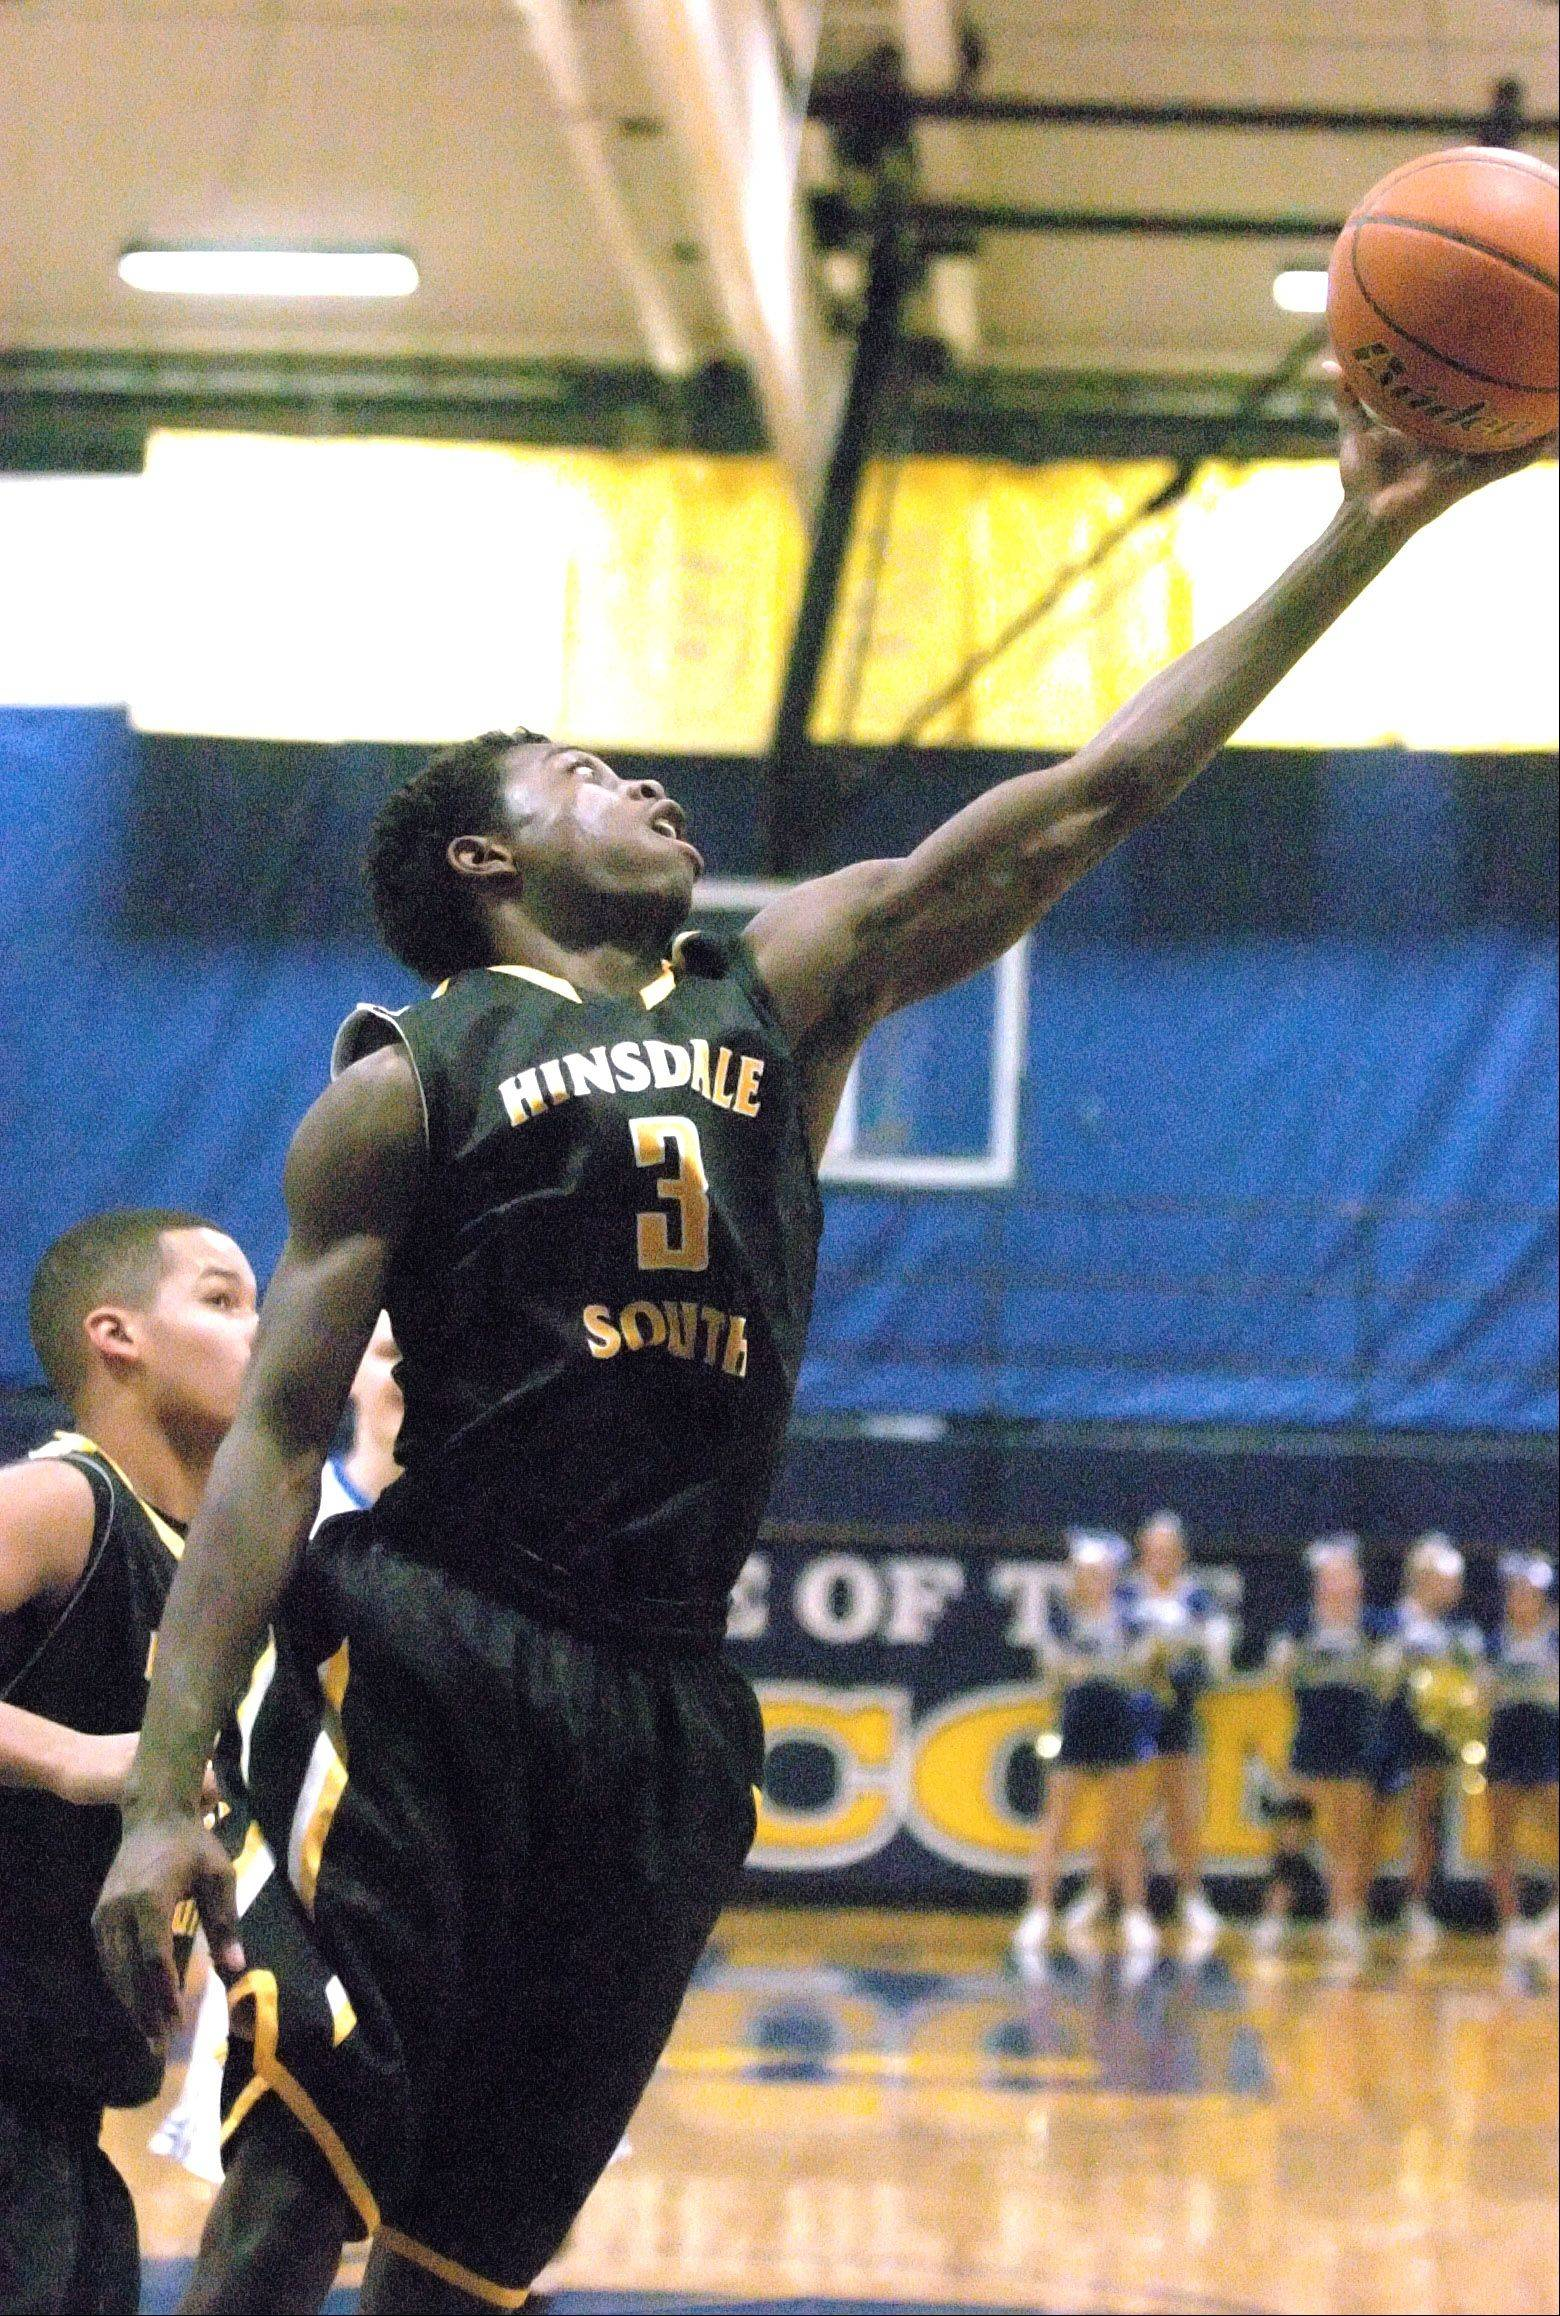 Images from the Hinsdale South vs. Wheaton North basketball game on Tuesday, November 27, 2012.